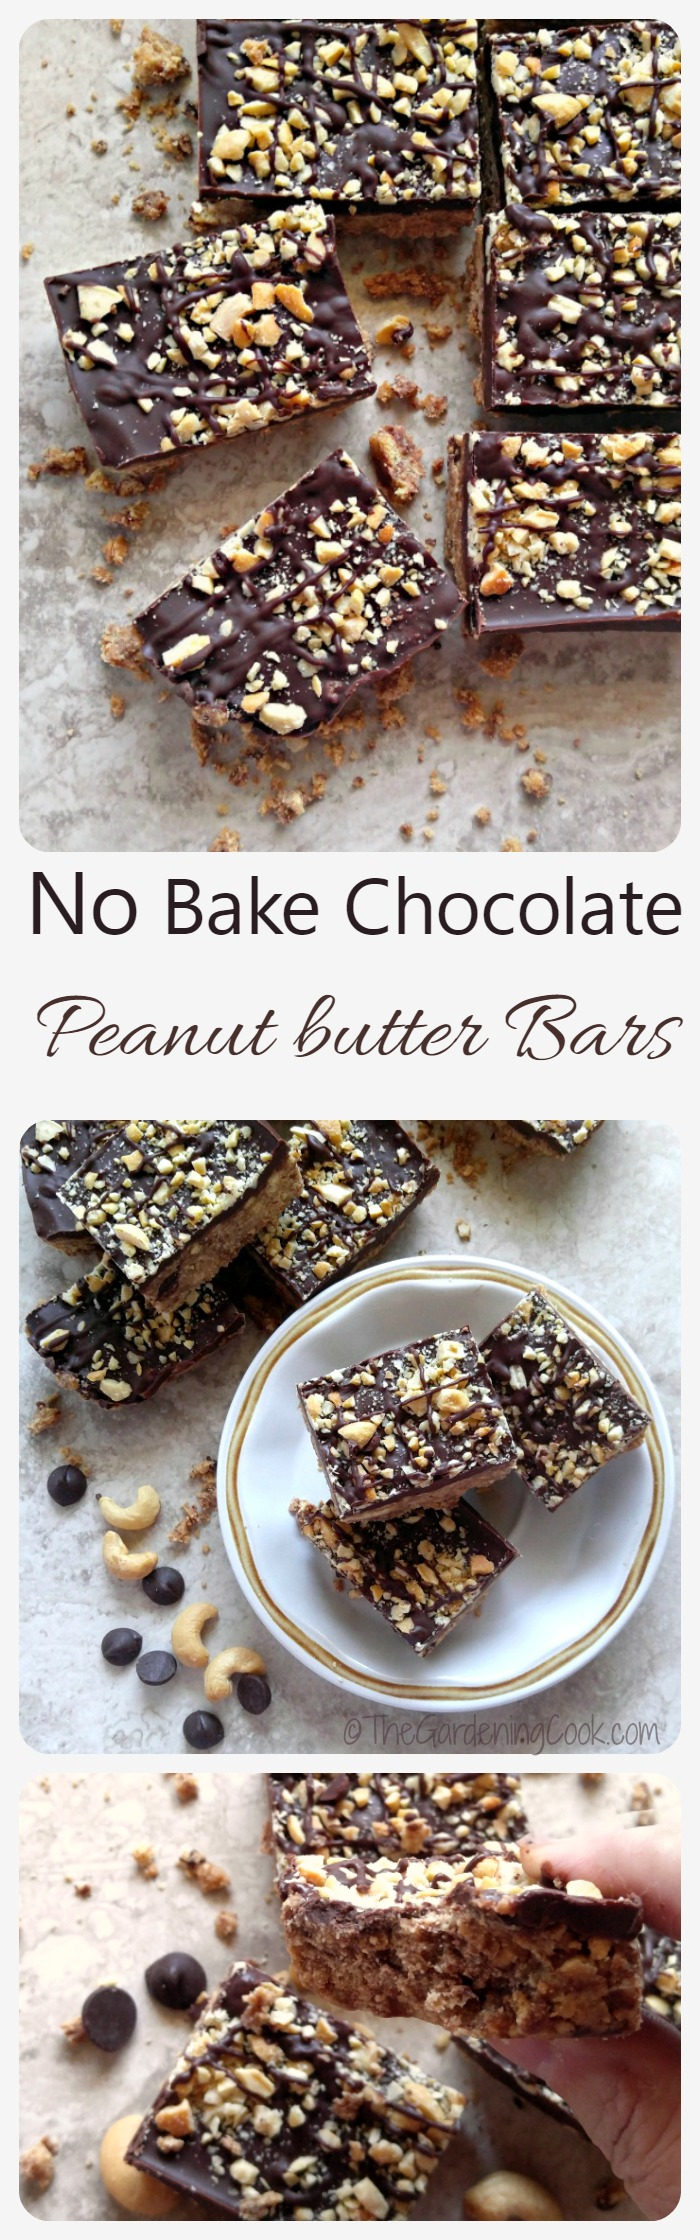 These no bake chocolate peanut butter bars are crunchy, and sweet and creamy. They come together quickly and will be great to give you a Reese's peanut butter cup fix! thegardeningcook.com